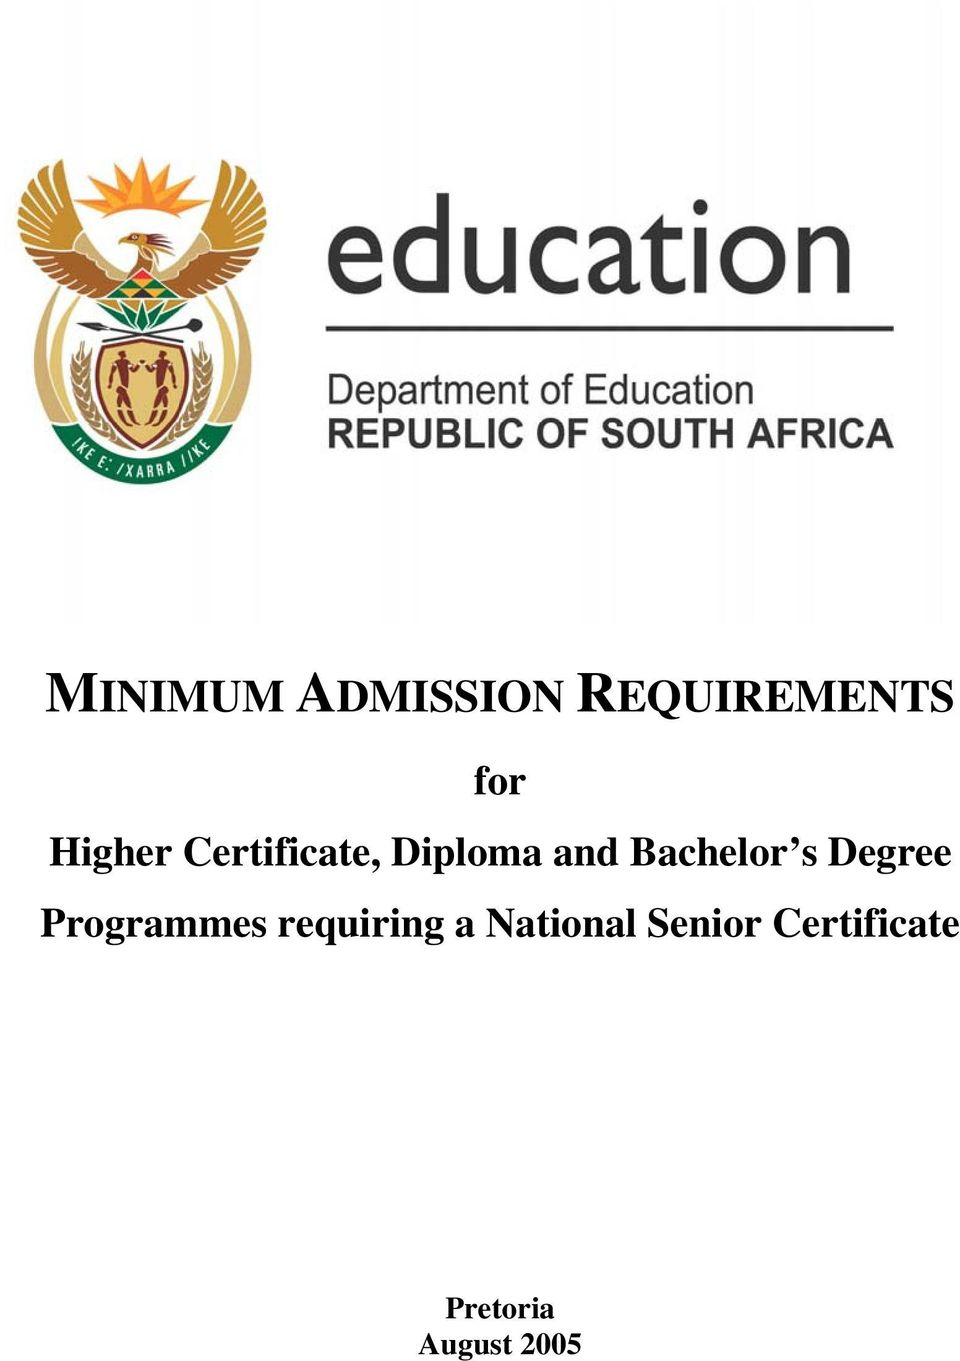 Bachelor s Degree Programmes requiring